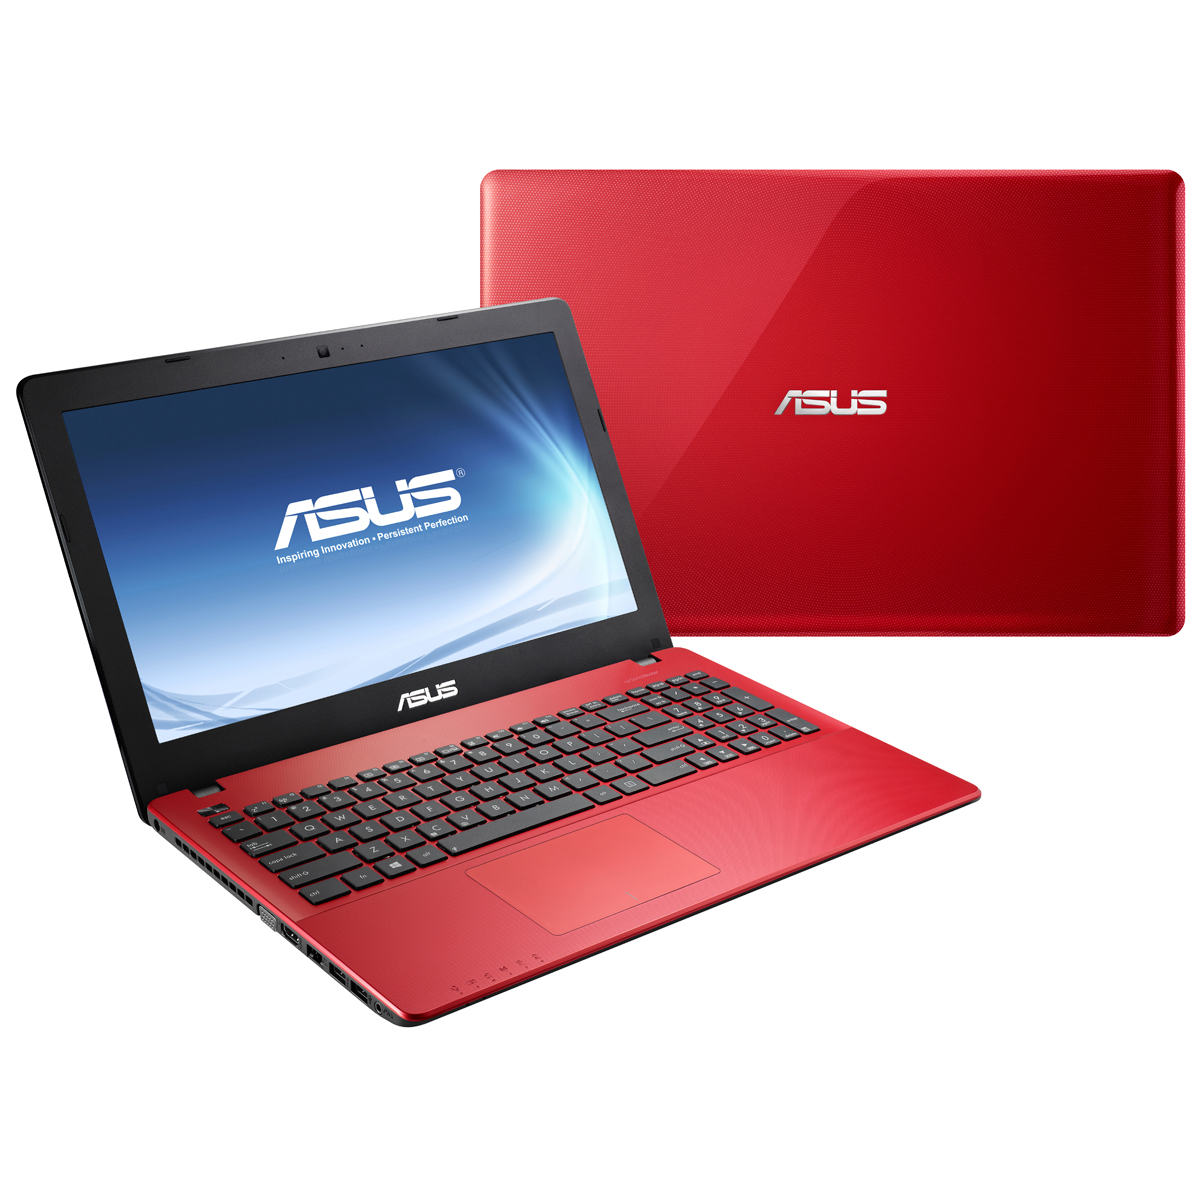 asus r510cc xx434h rouge pc portable asus sur. Black Bedroom Furniture Sets. Home Design Ideas